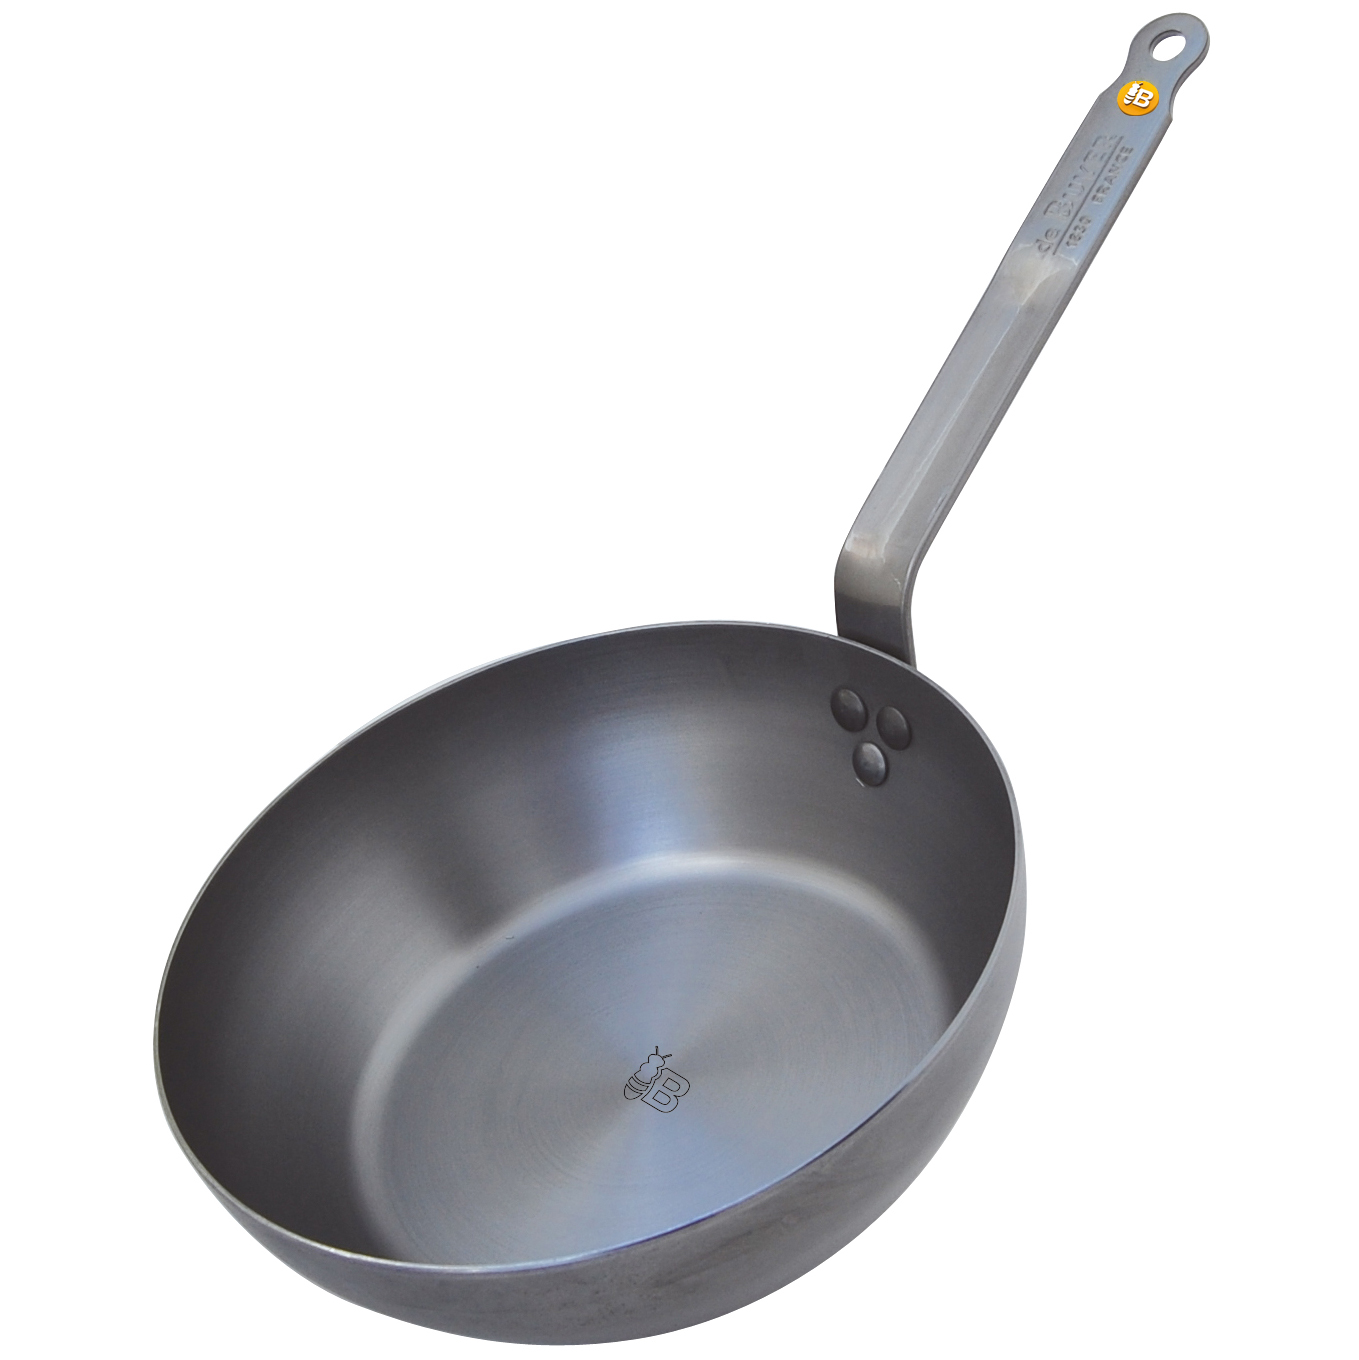 de Buyer - Mineral B Element Sauteuse 32 cm